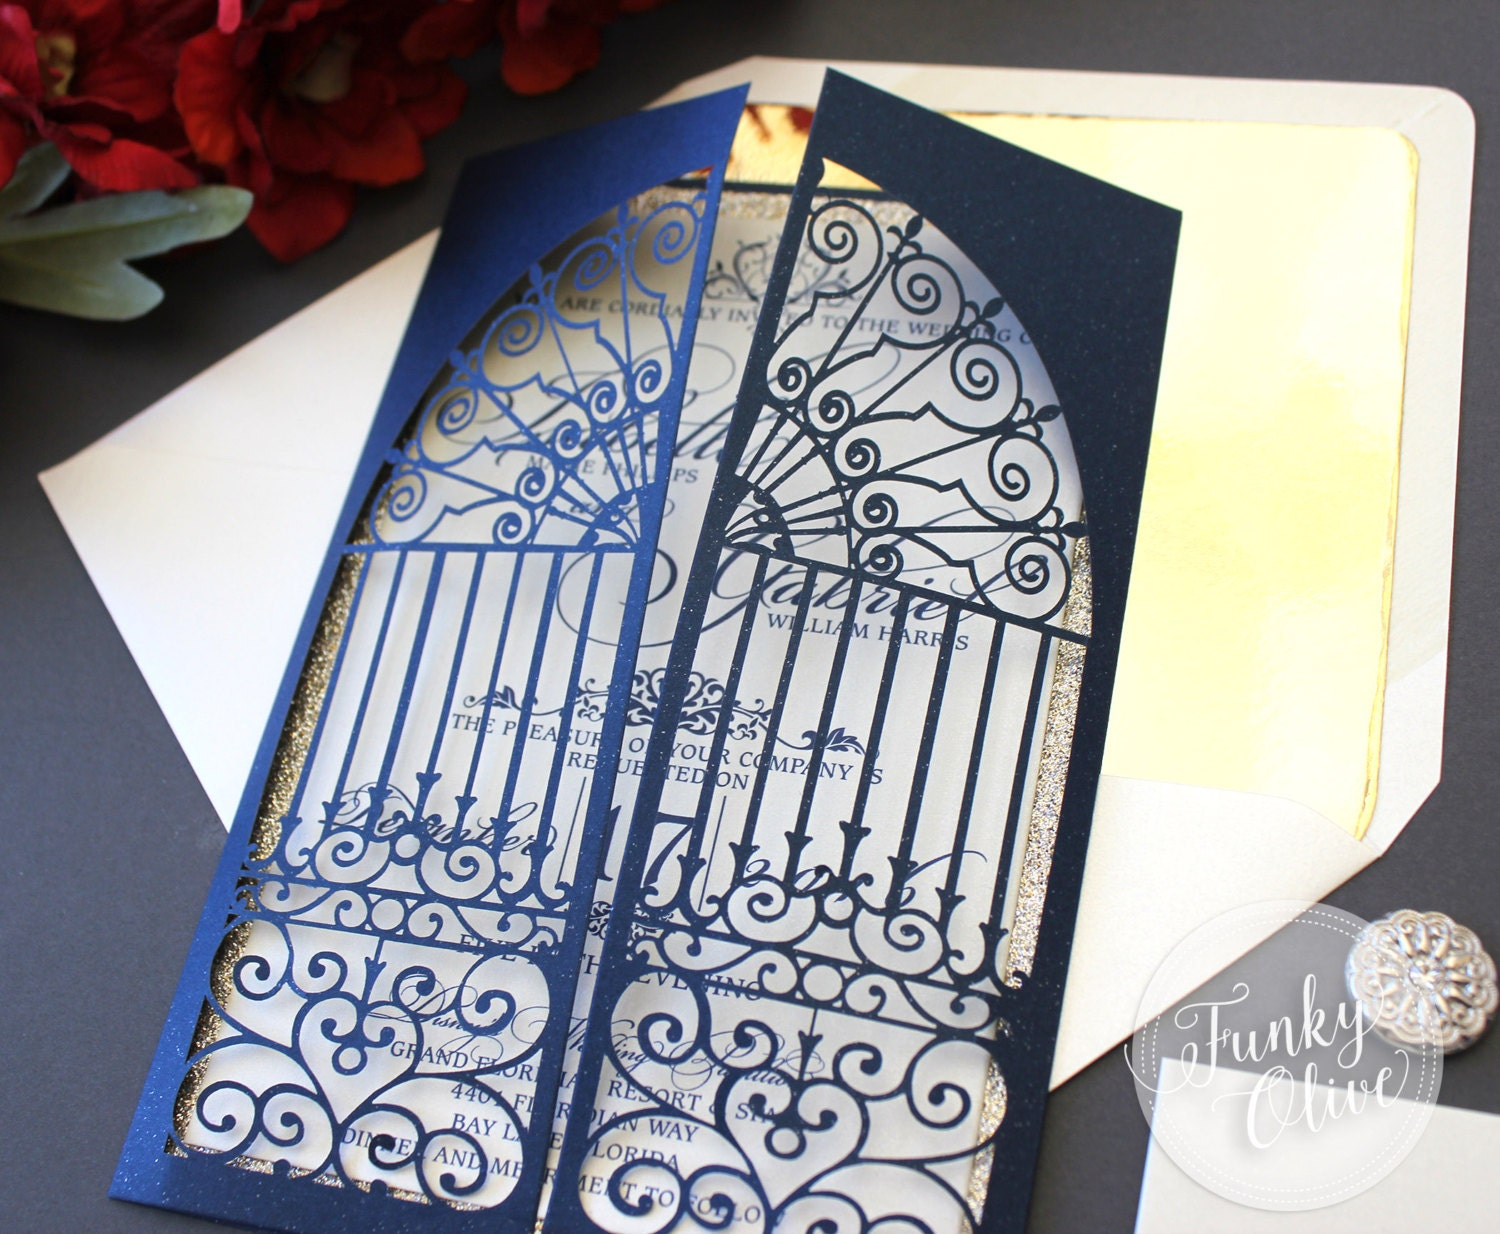 Beauty And The Beast Themed Wedding Invitations: Belle Beauty & The Beast Inspired Wedding Invitations Navy